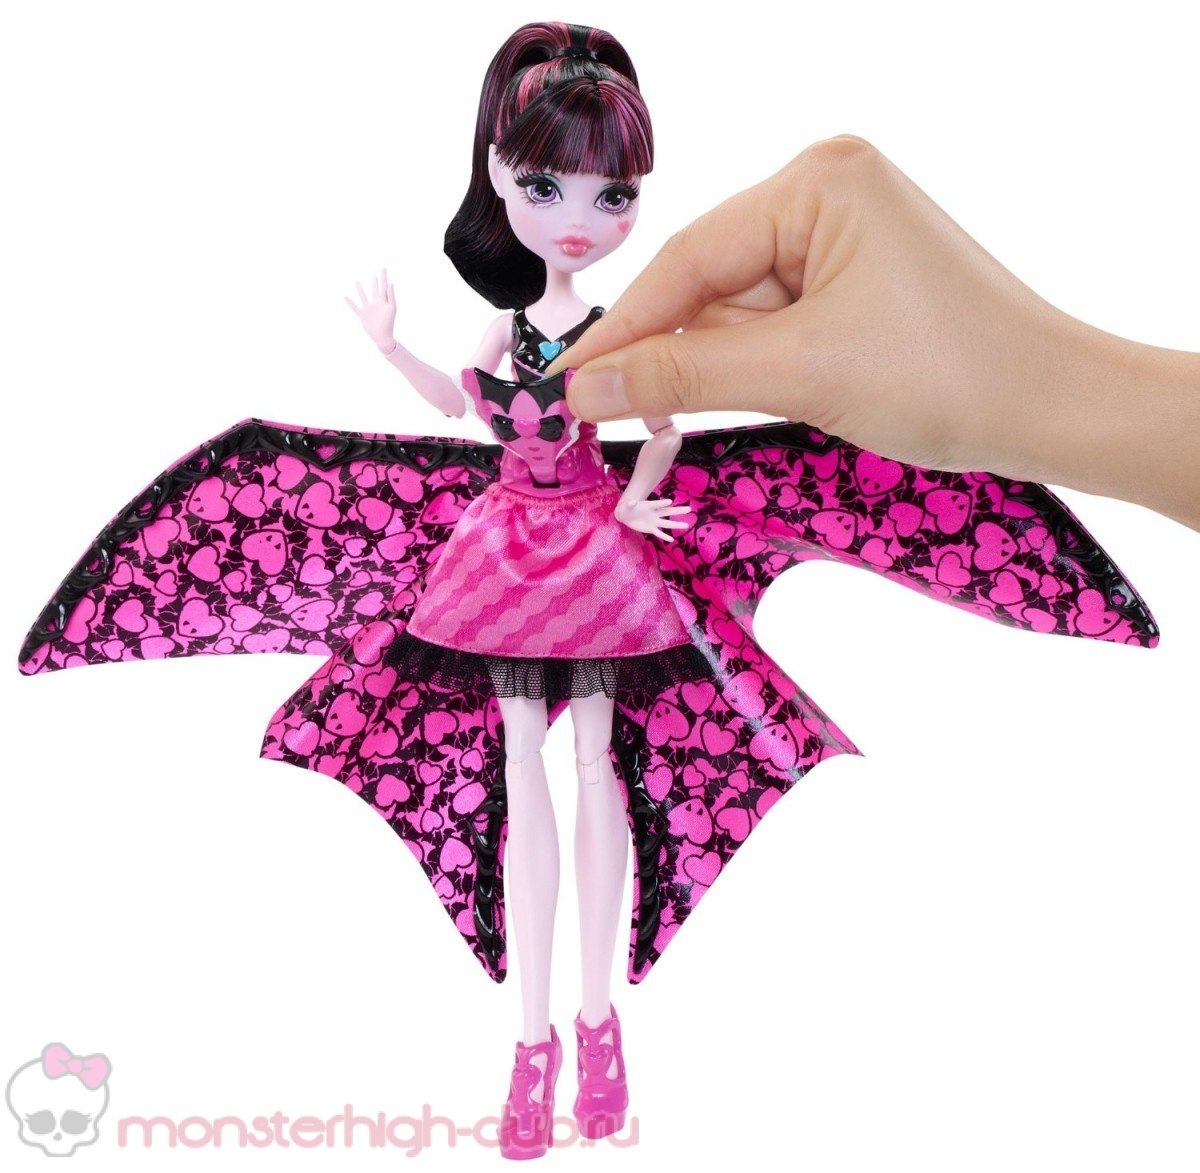 monster_high_draculaura_ghoul_to_bat_new_doll (3)